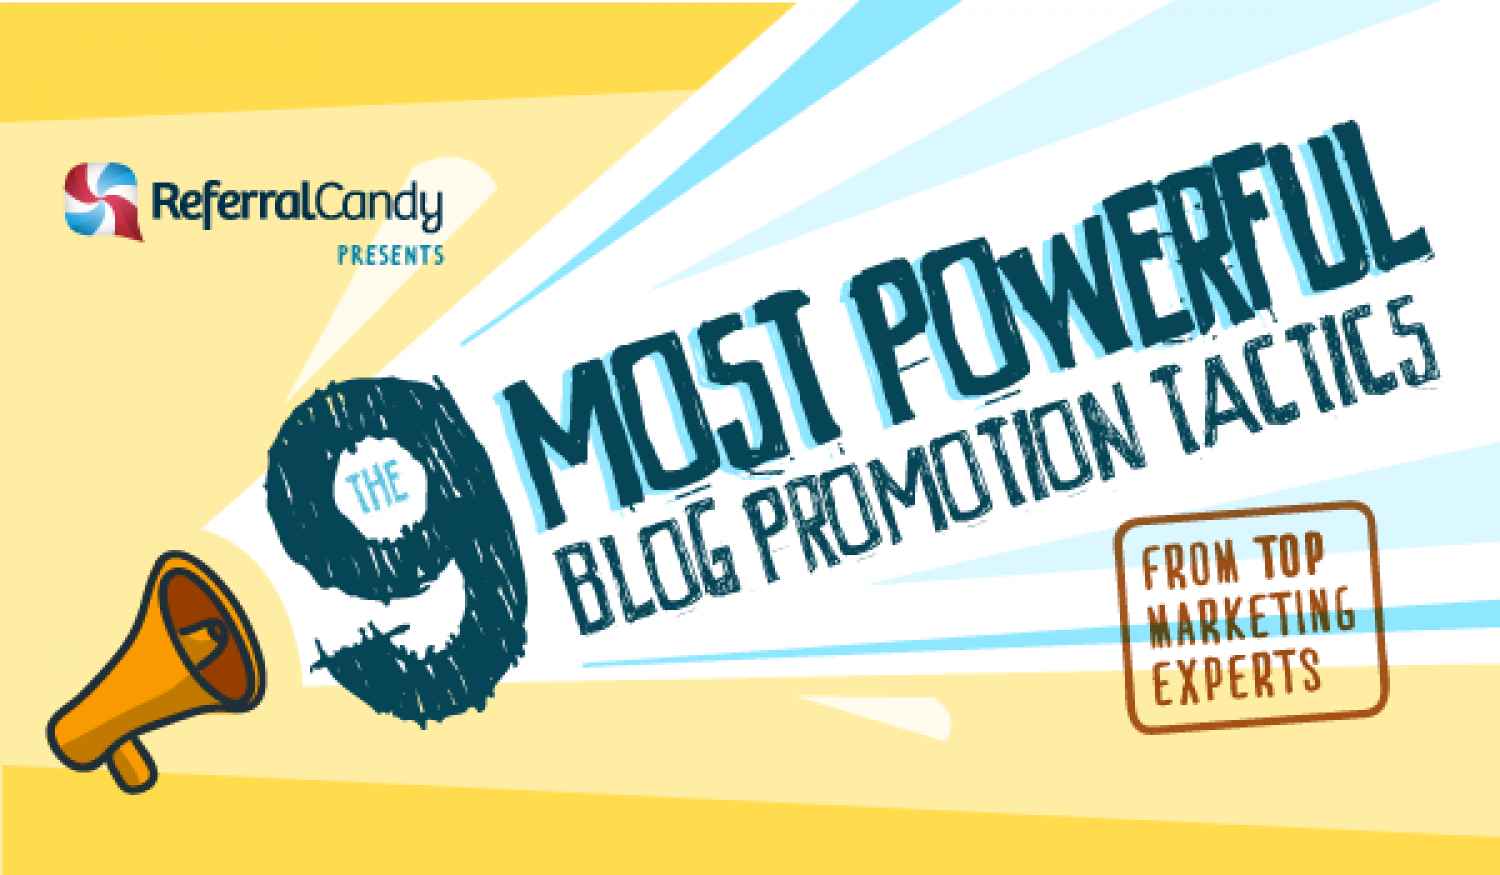 The 9 Most Powerful Blog Promotion Tactics From Top Marketing Experts Infographic